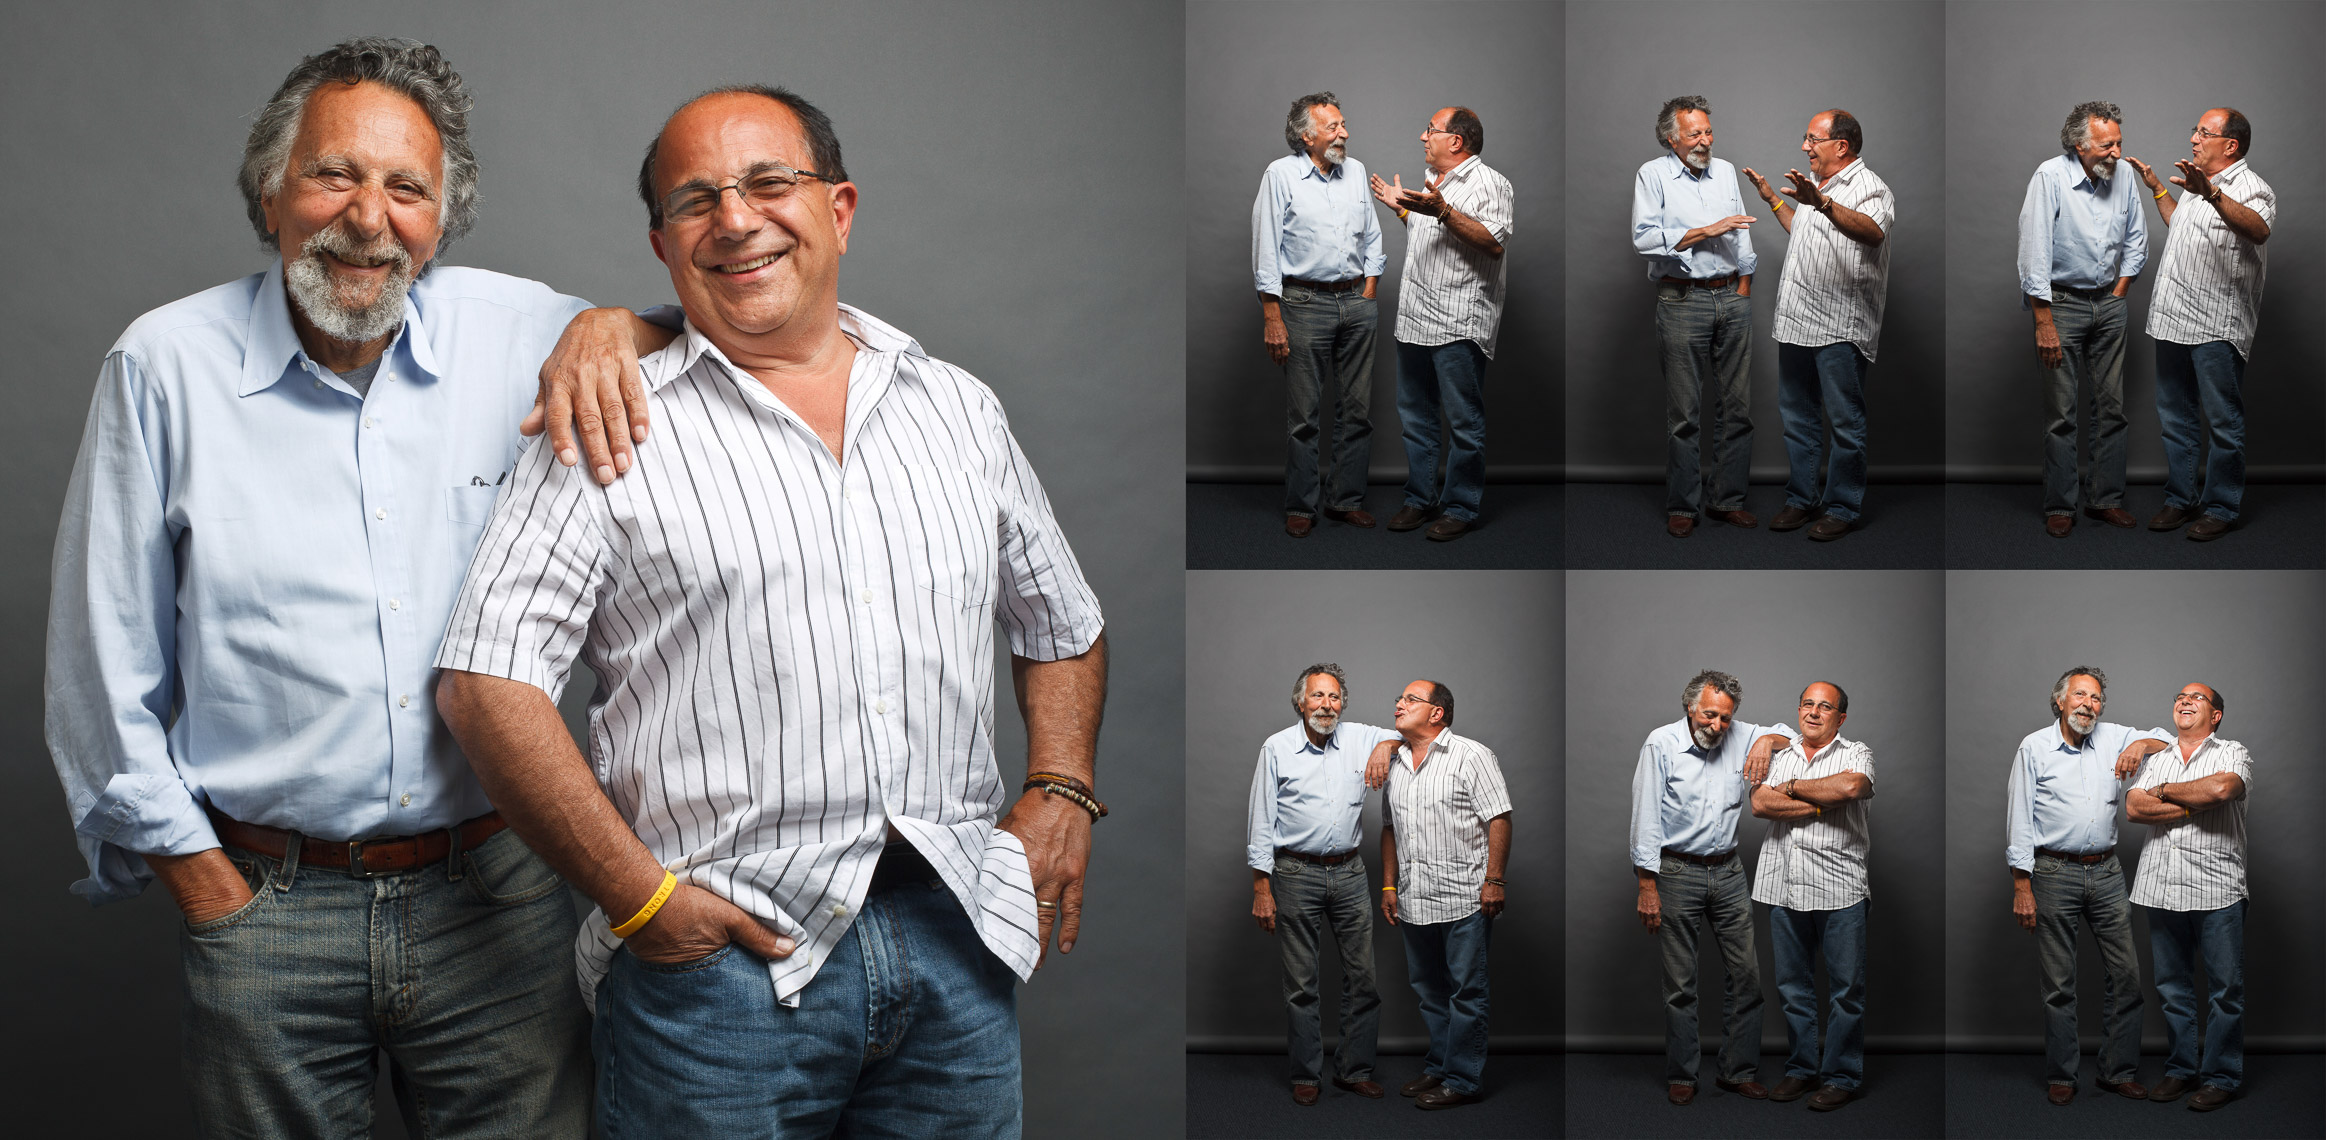 Tom & Ray Magliozzi - Click & Clack the Tappet Brothers • Jason Grow Photography